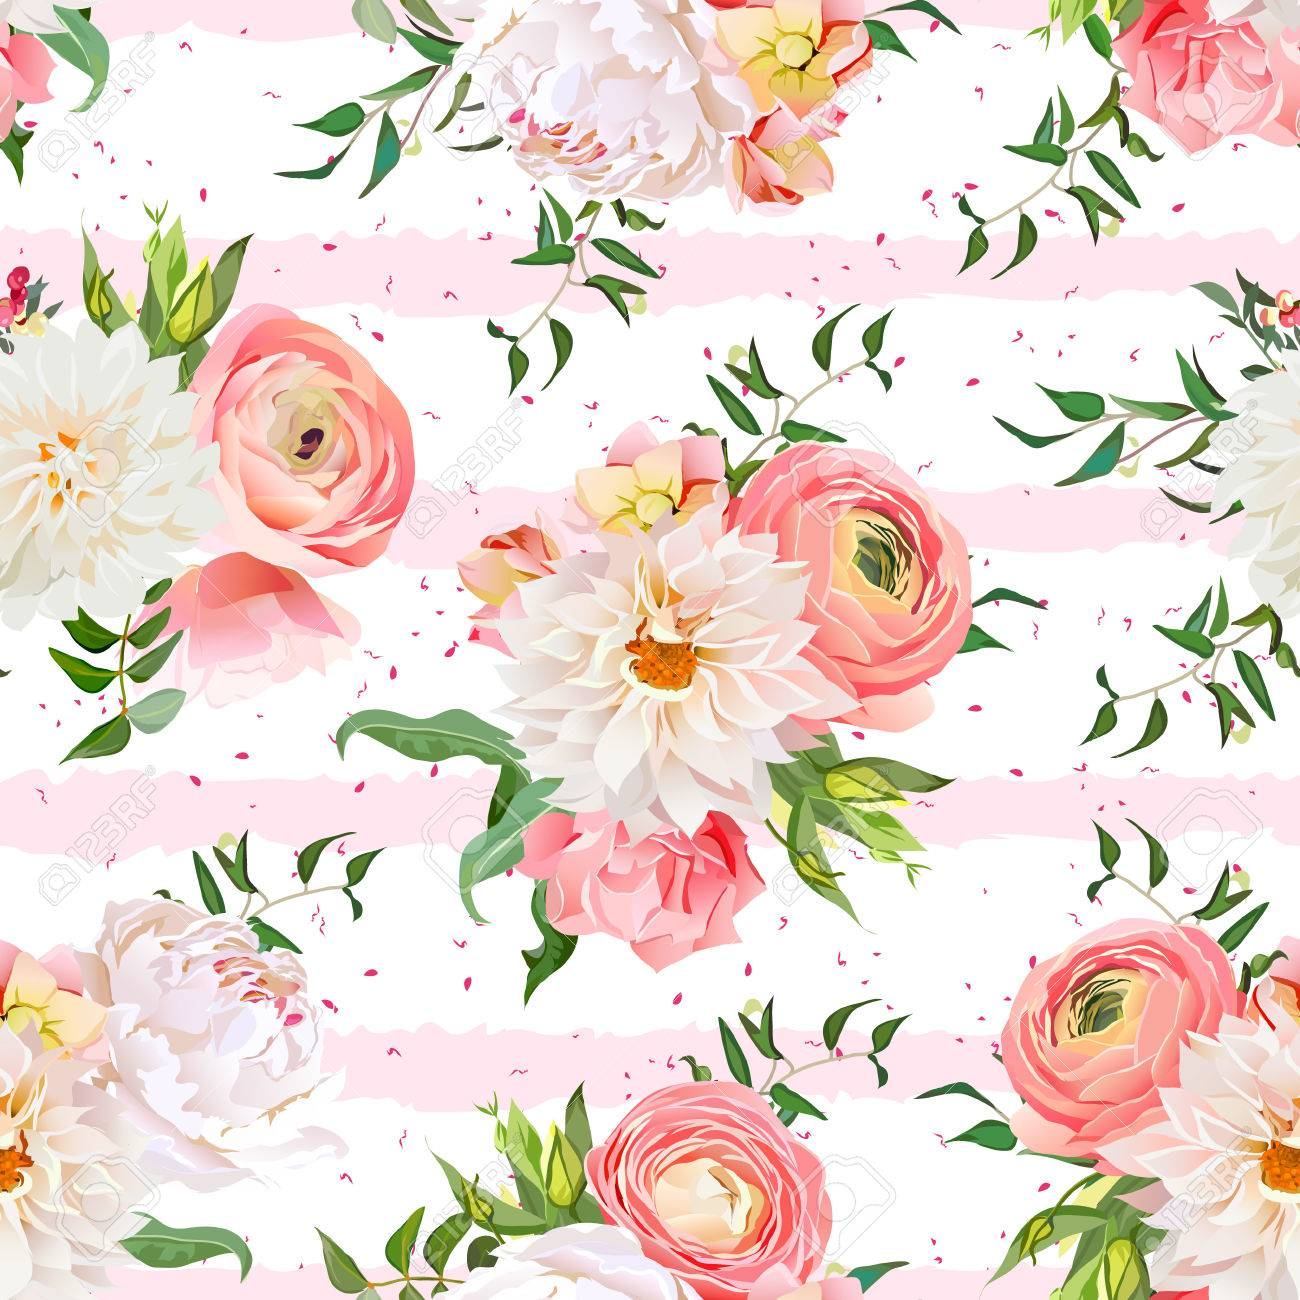 dahlia ranunculus rose and peony seamless pattern romantic garden print with pink striped